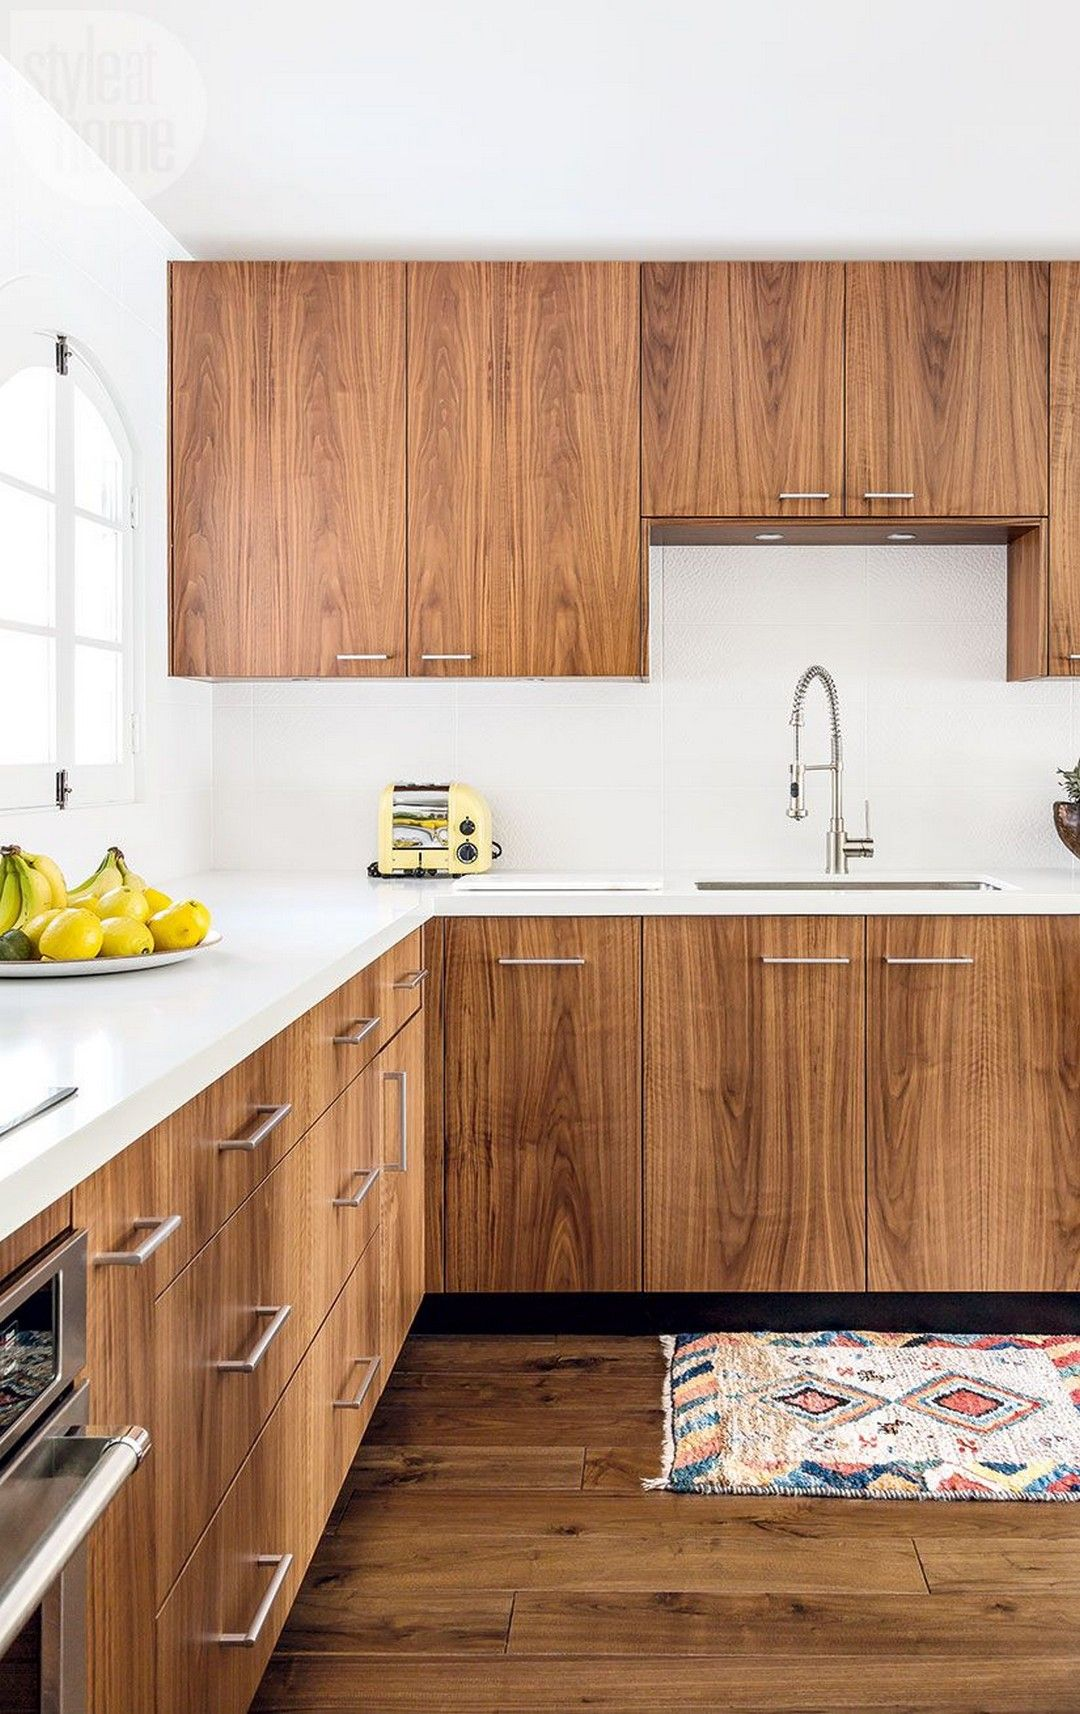 28 Neutral Kitchen Wood Cabinetry Design Ideas Https Kitchendecorpad Com 2018 09 20 28 Neutra Modern Kitchen Design Mid Century Modern Kitchen Modern Kitchen